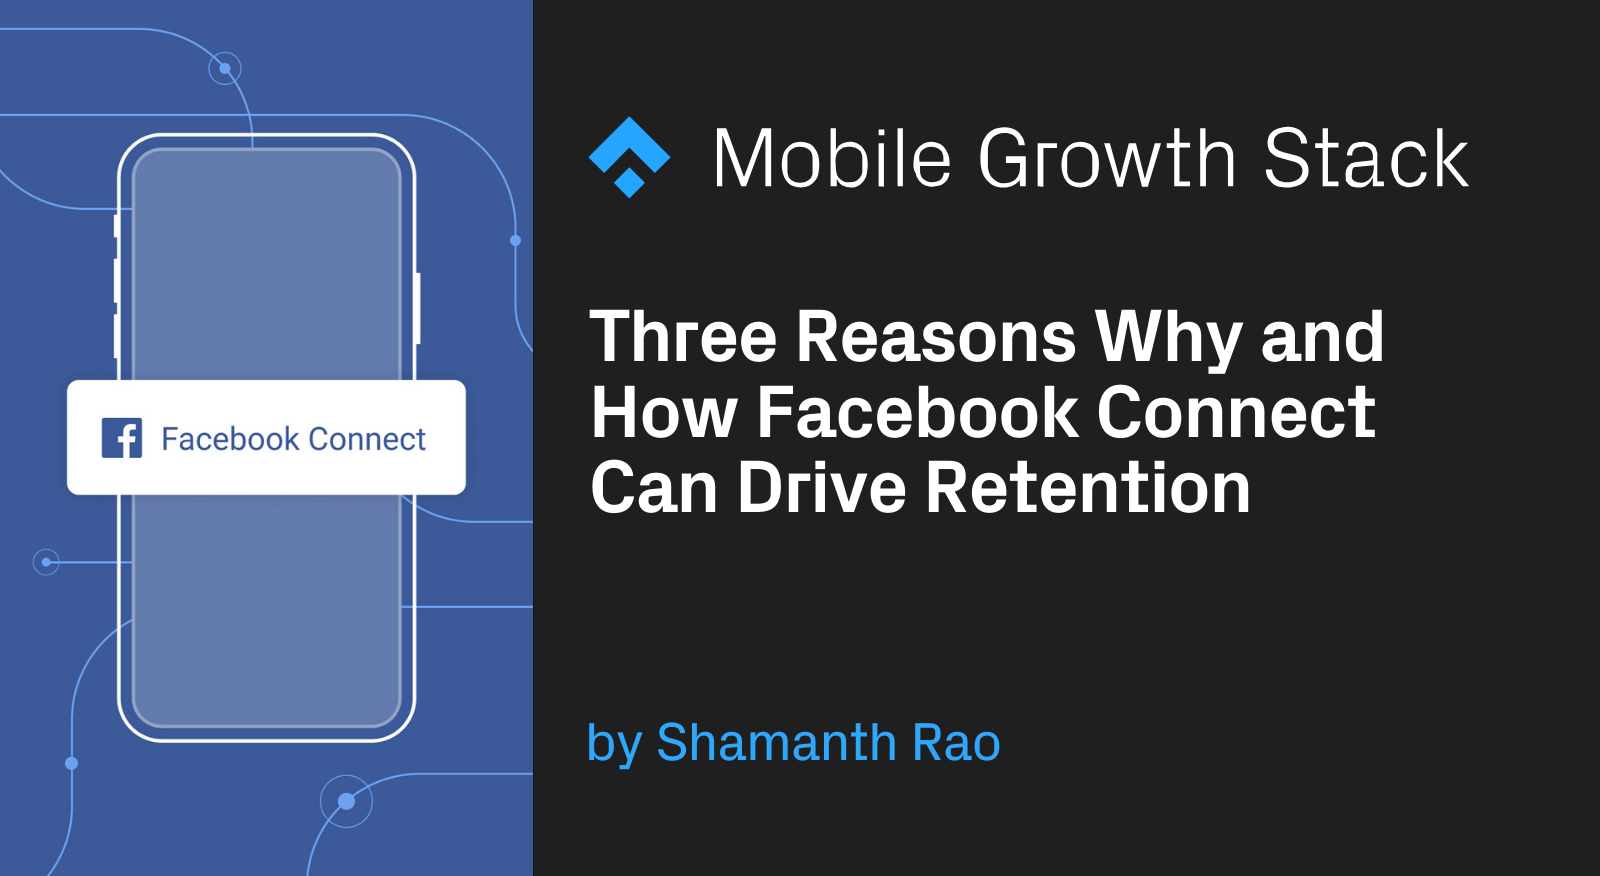 three reasons why and how facebook connect can drive retention